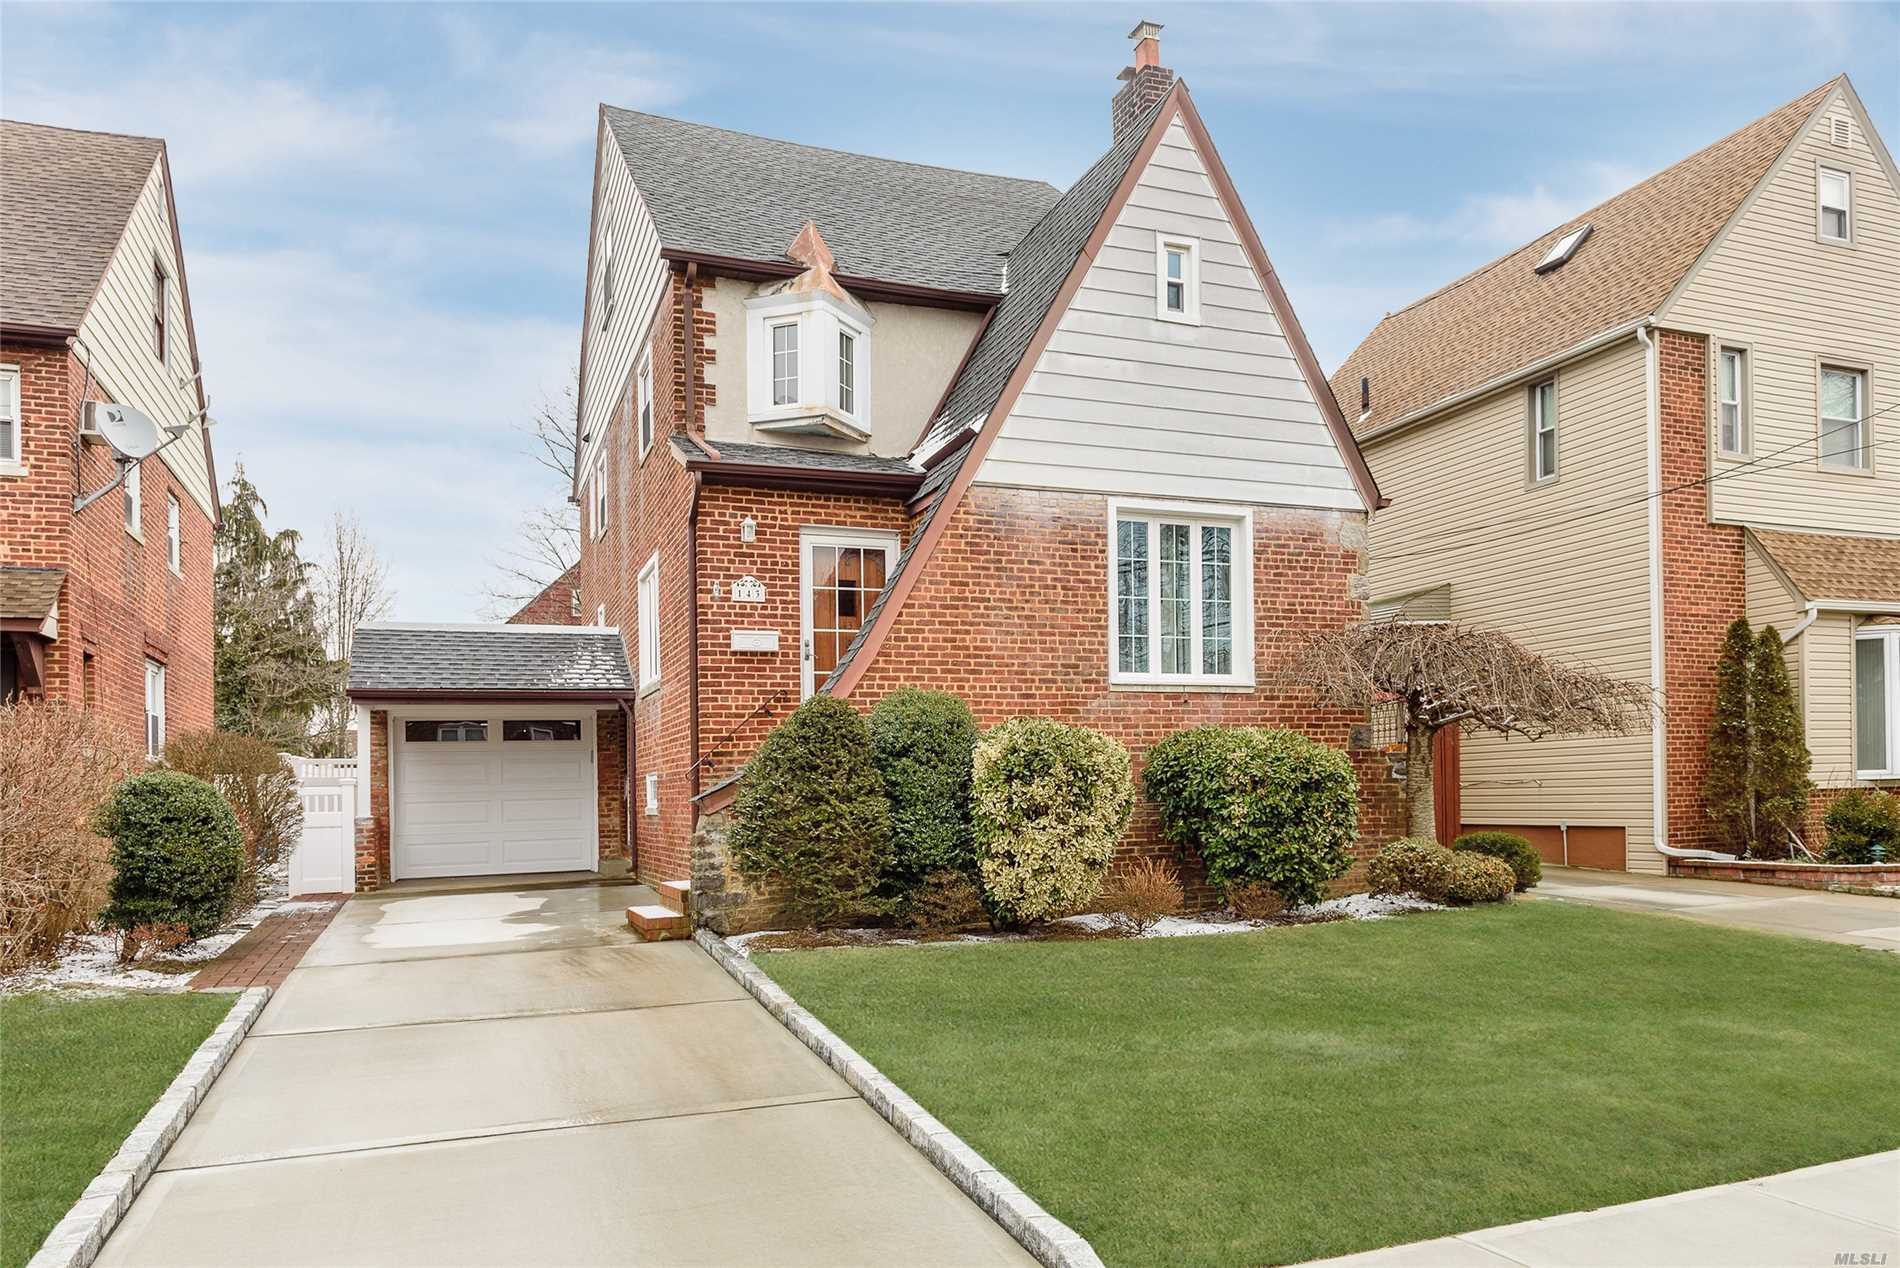 Charming Gibson Brick Tudor With Wood Burning Fireplace, Original Oak Floors Thru Out, Updated Kitchen And Baths. Full Walk Up Attic, Walk In Closet In Master Bedroom, Cac, Igs, New Roof, New Heating System, New Hwh, New Pvc Fence, New Driveway With Belgium Blocks. Seconds To Lirr, Shops, Park And Bus.